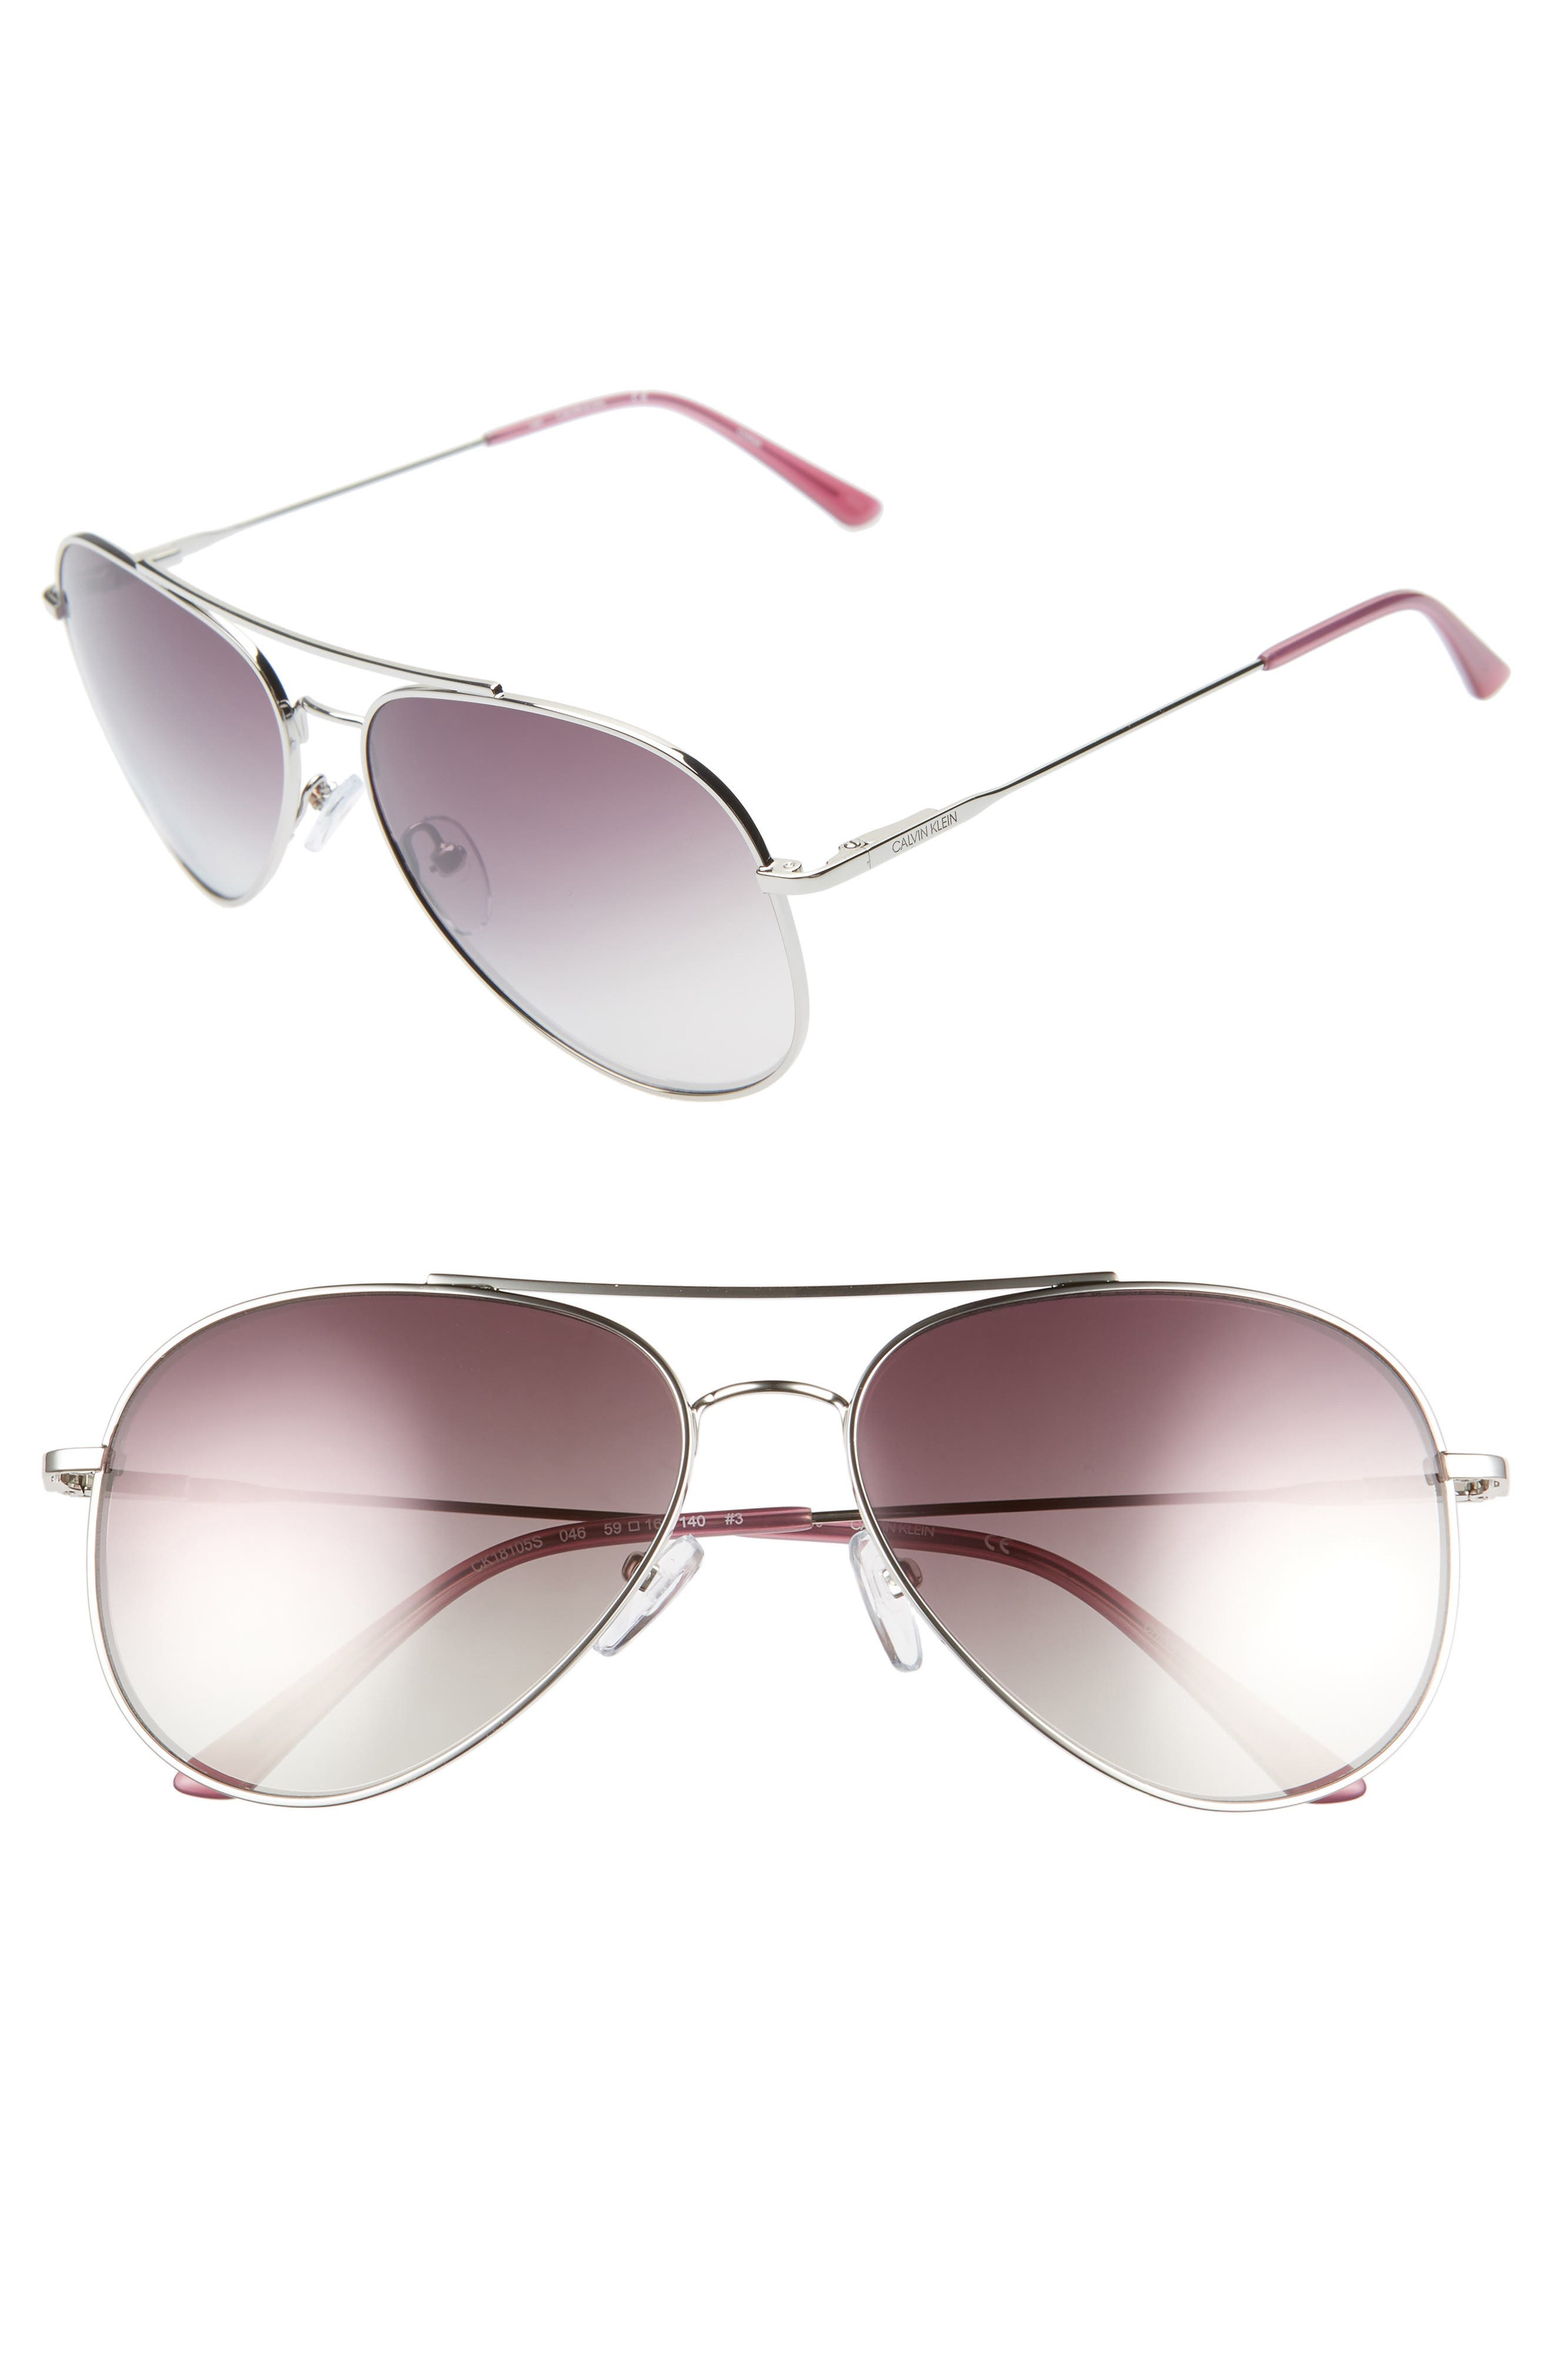 947f8f14716d4 Calvin Klein Sunglasses for Women